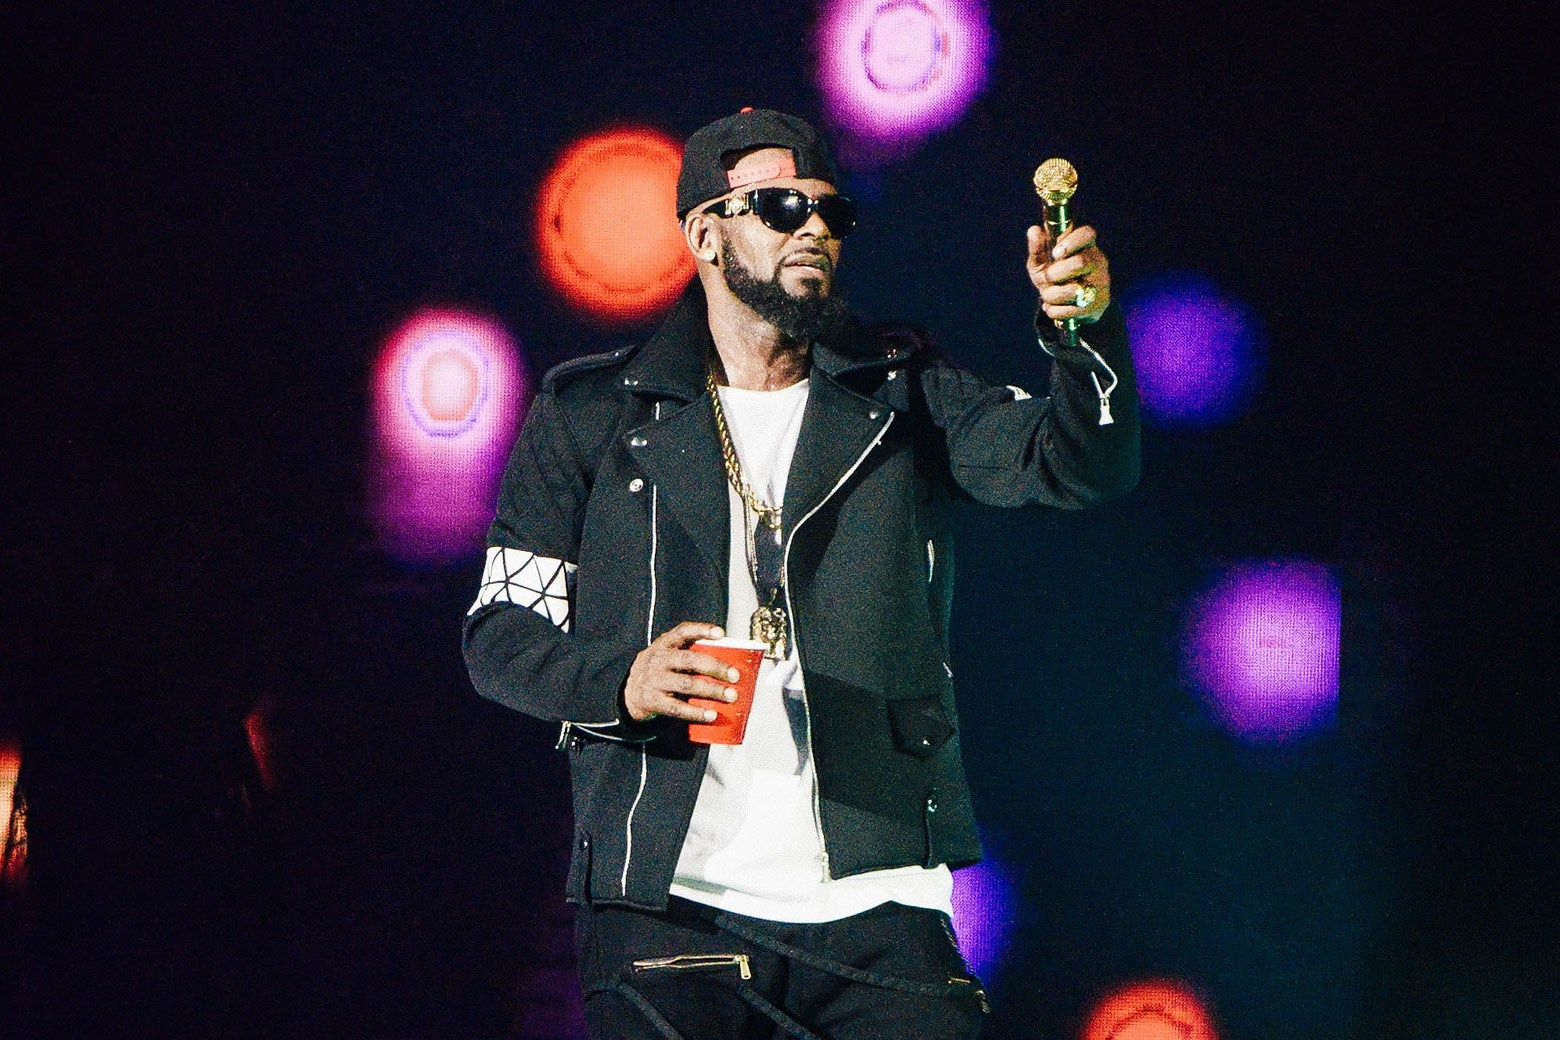 R. Kelly performs during The Buffet Tour at Allstate Arena on May 7, 2016 in Chicago, Illinois. (Photo by Daniel Boczarski/Getty Images)